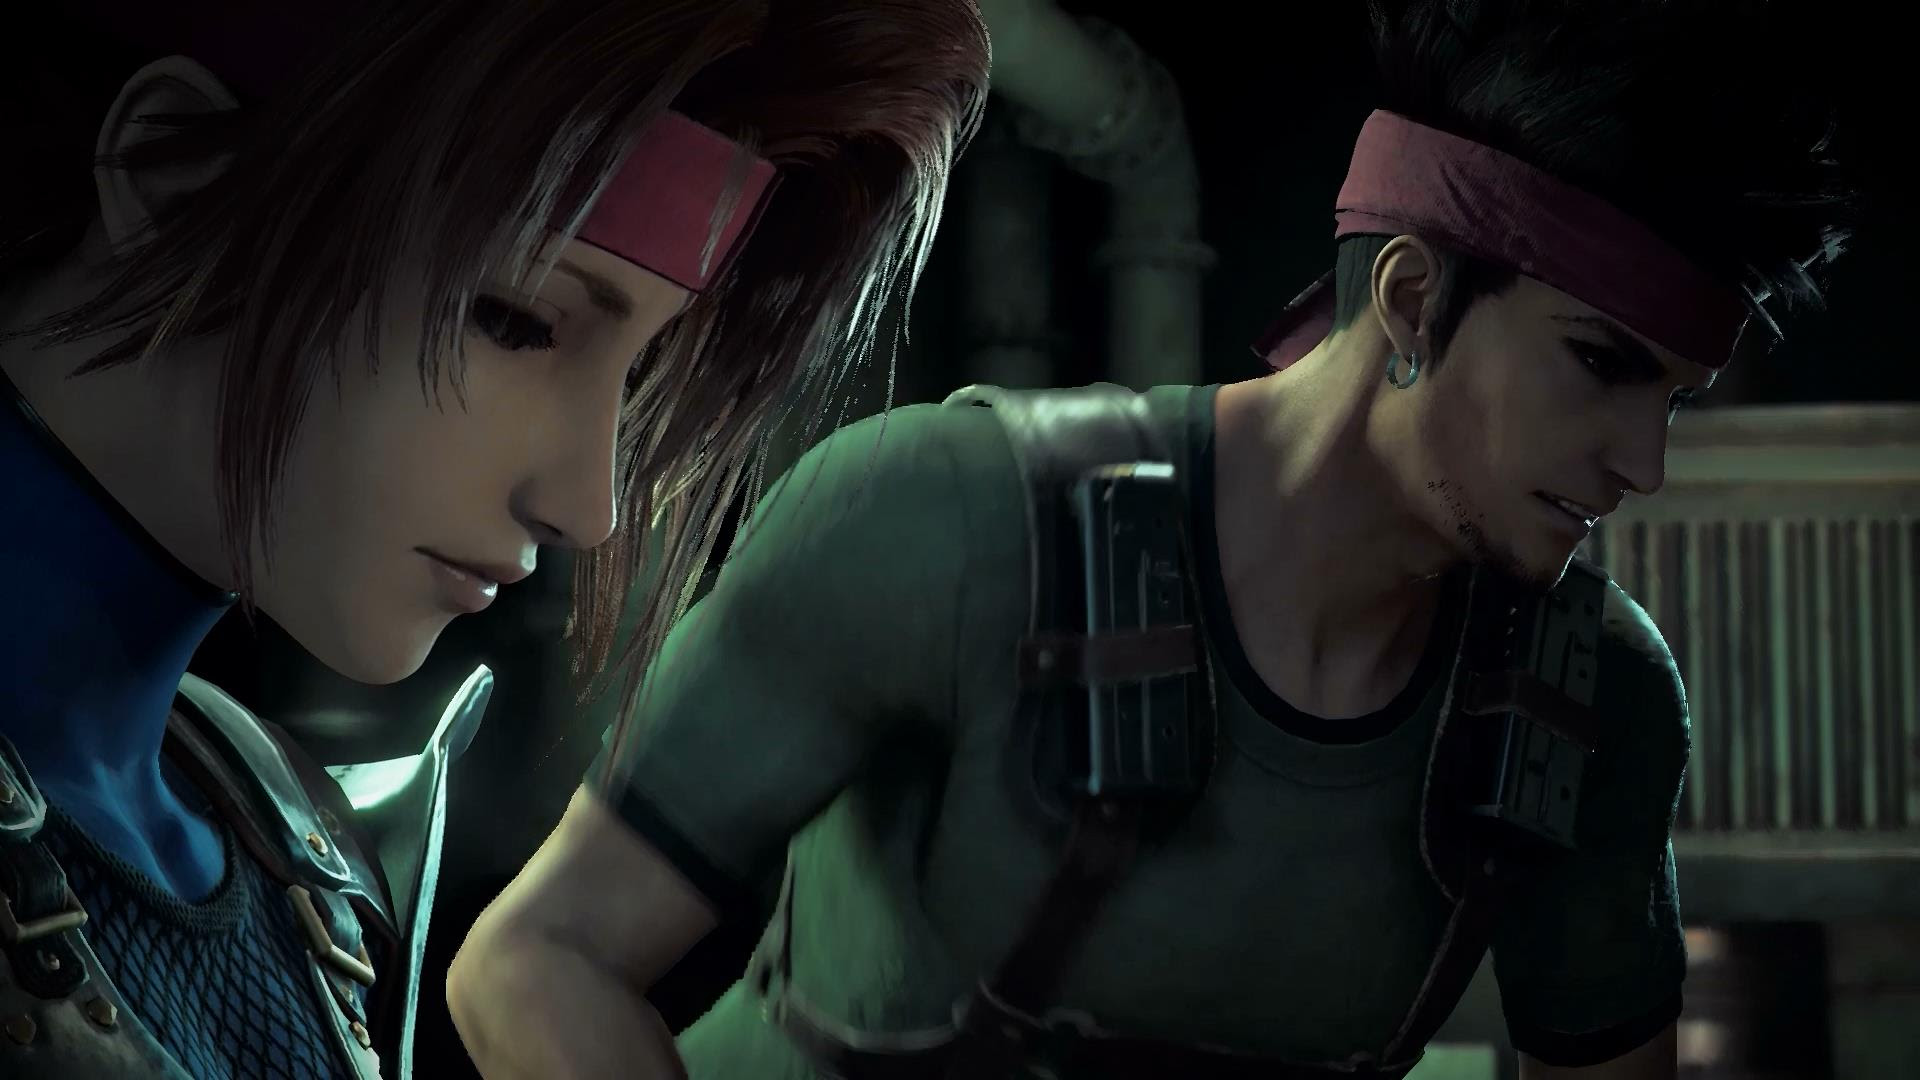 As Square Enix shifts Final Fantasy VII Remake development in-house, there's no chance it's coming soon screenshot